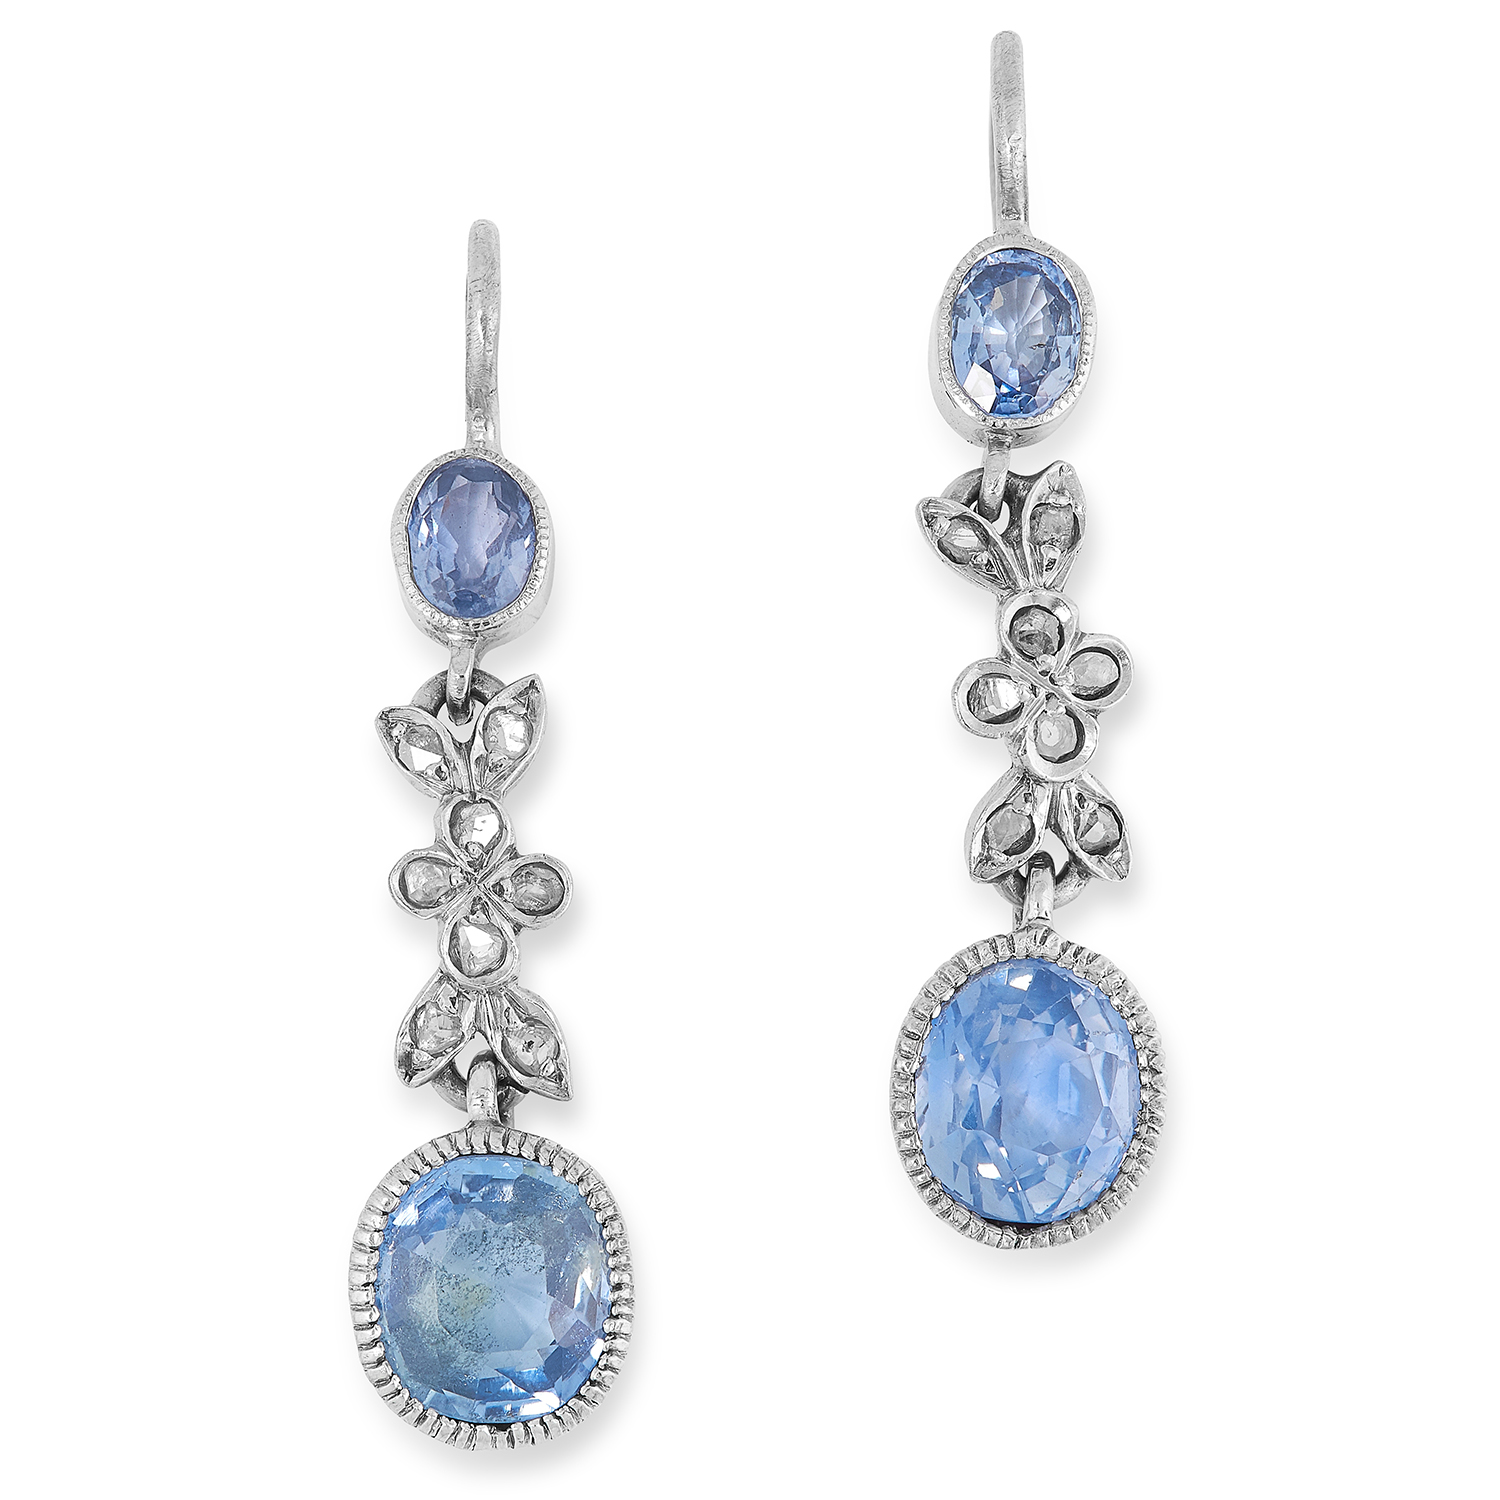 Los 4 - A PAIR OF ANTIQUE CEYLON SAPPHIRE AND DIAMOND EARRINGS set with oval cut sapphires totalling 6.0-6.5